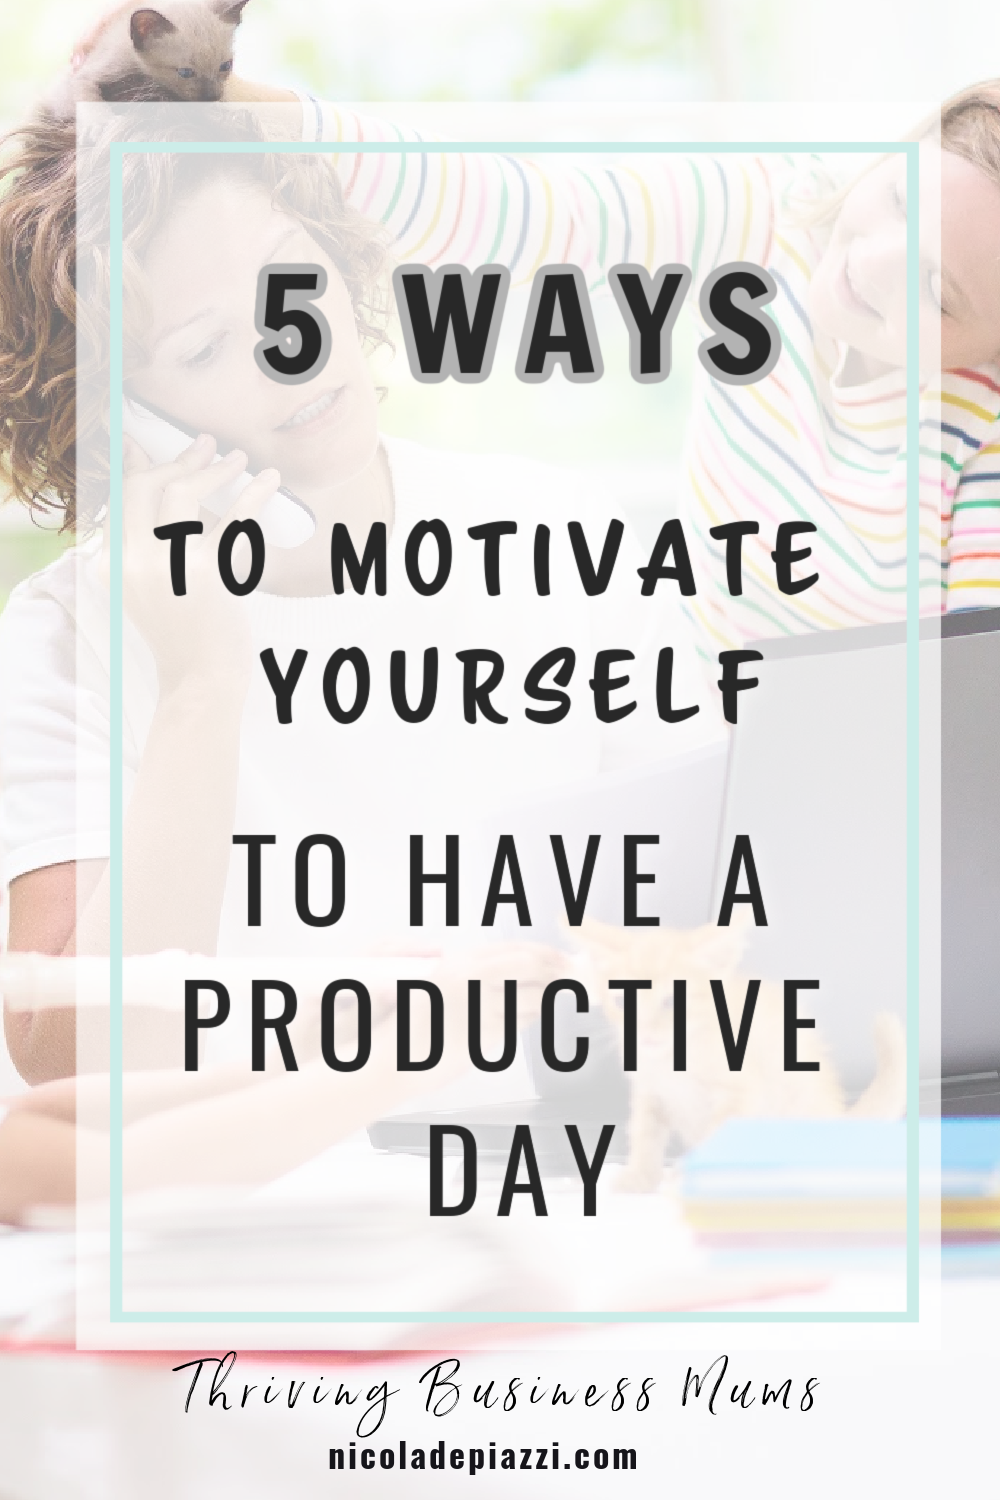 5 ways to motivate yourself to have a productive day